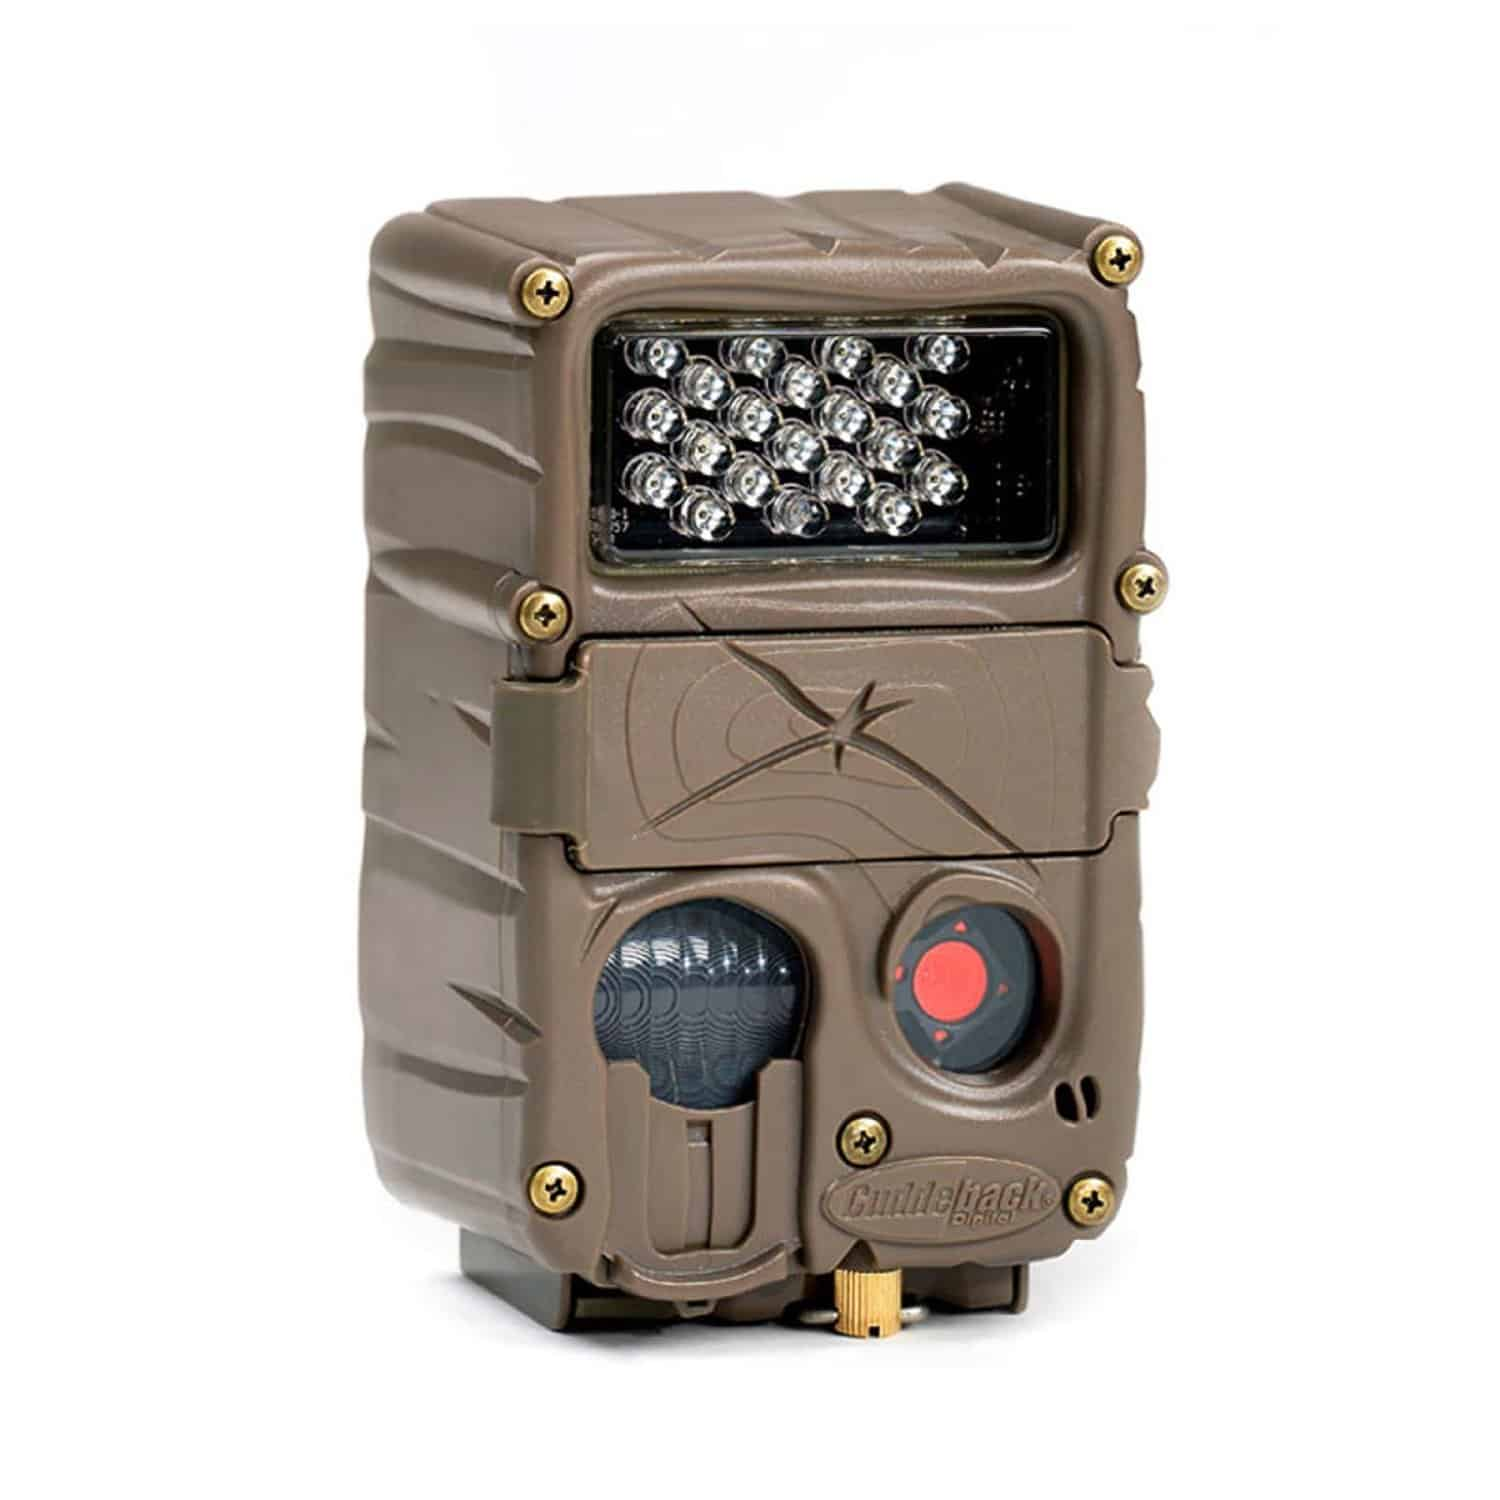 CUDDEBACK E2 Long Range IR Infrared 20 MP